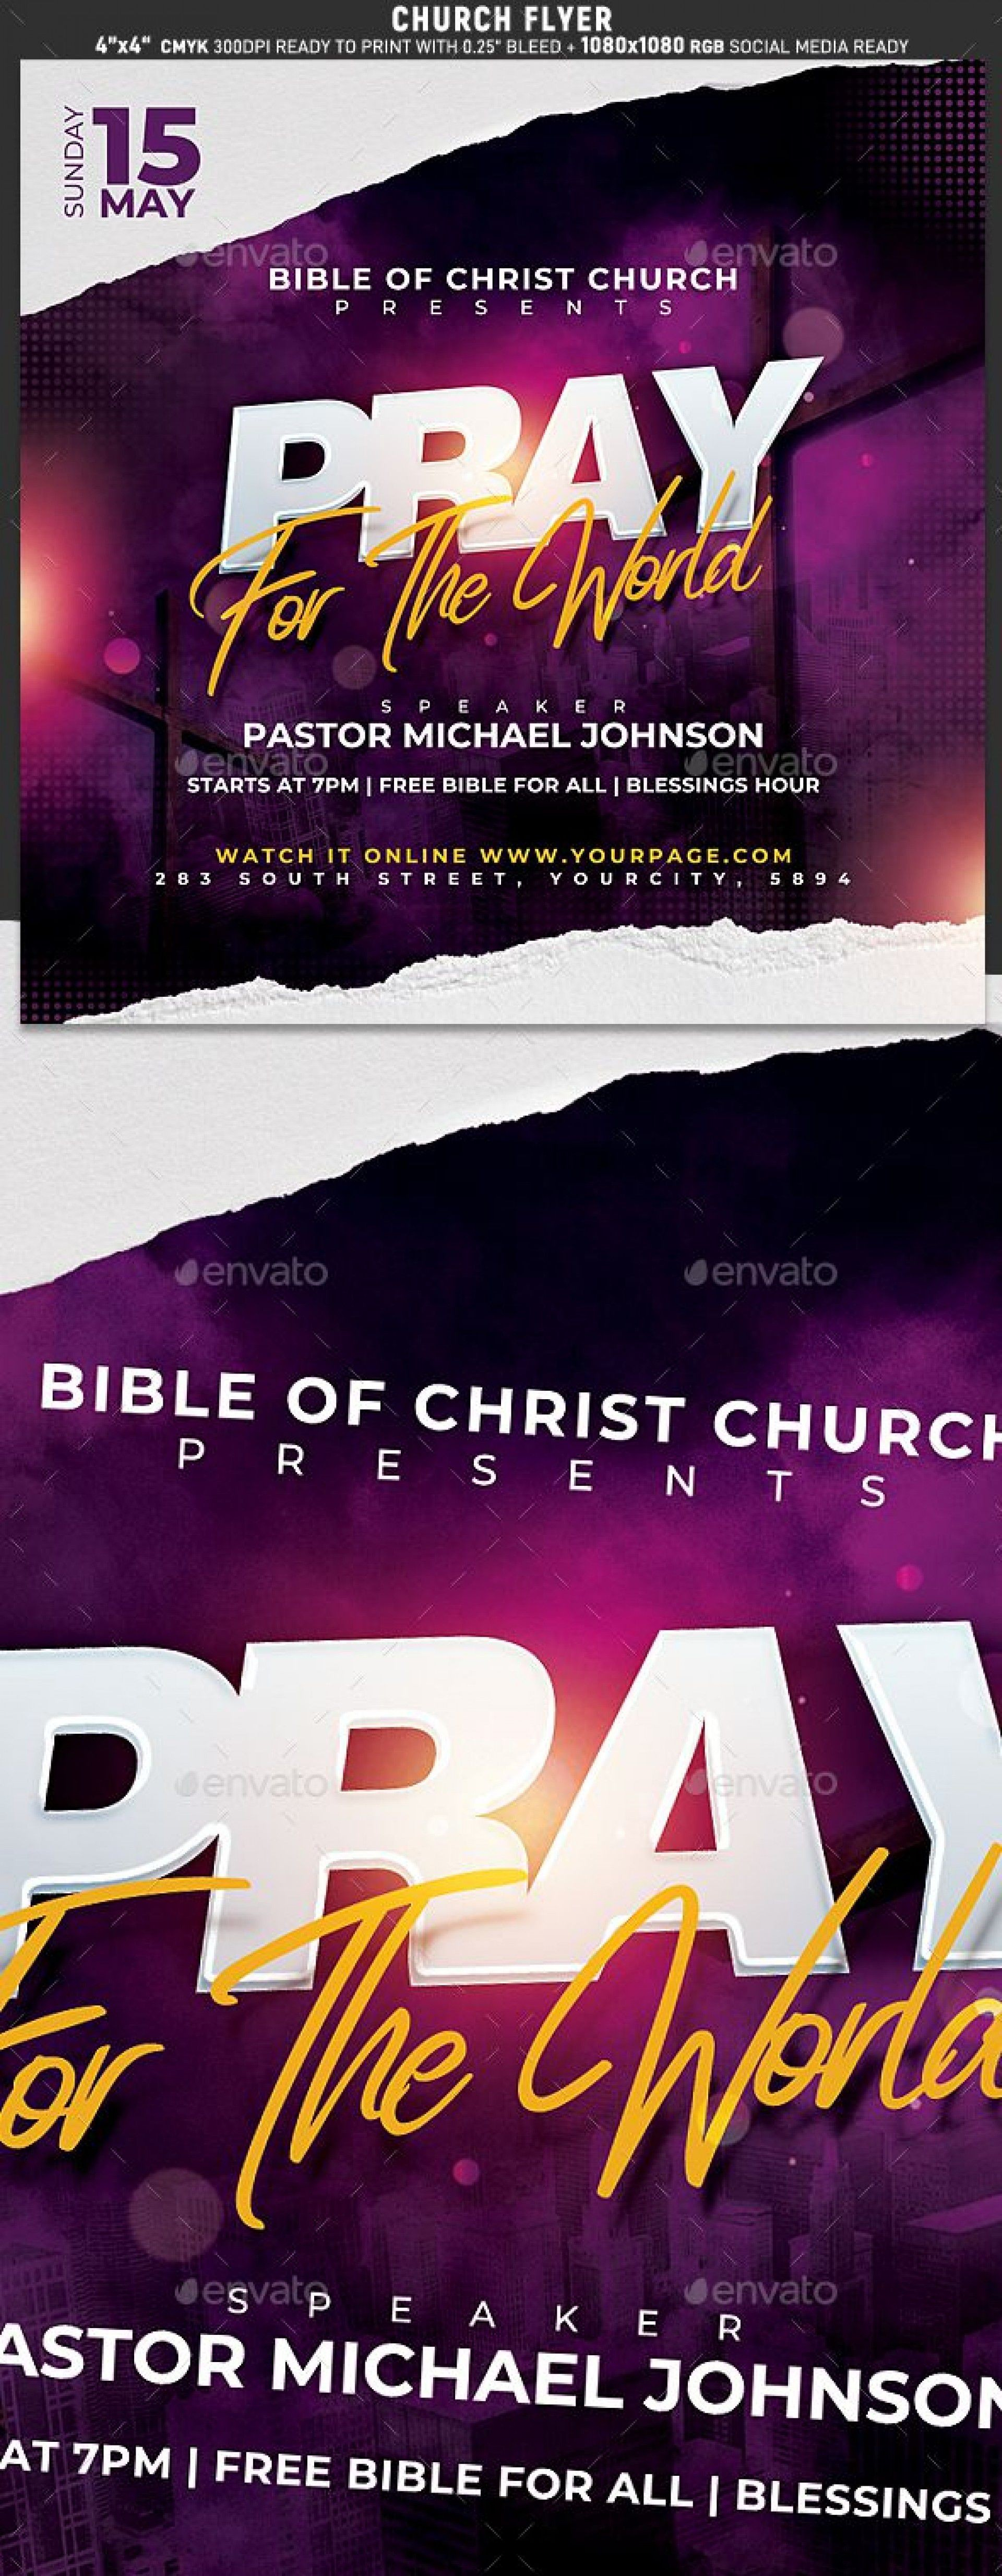 009 Marvelou Church Flyer Template Free Printable High Def  Event1920